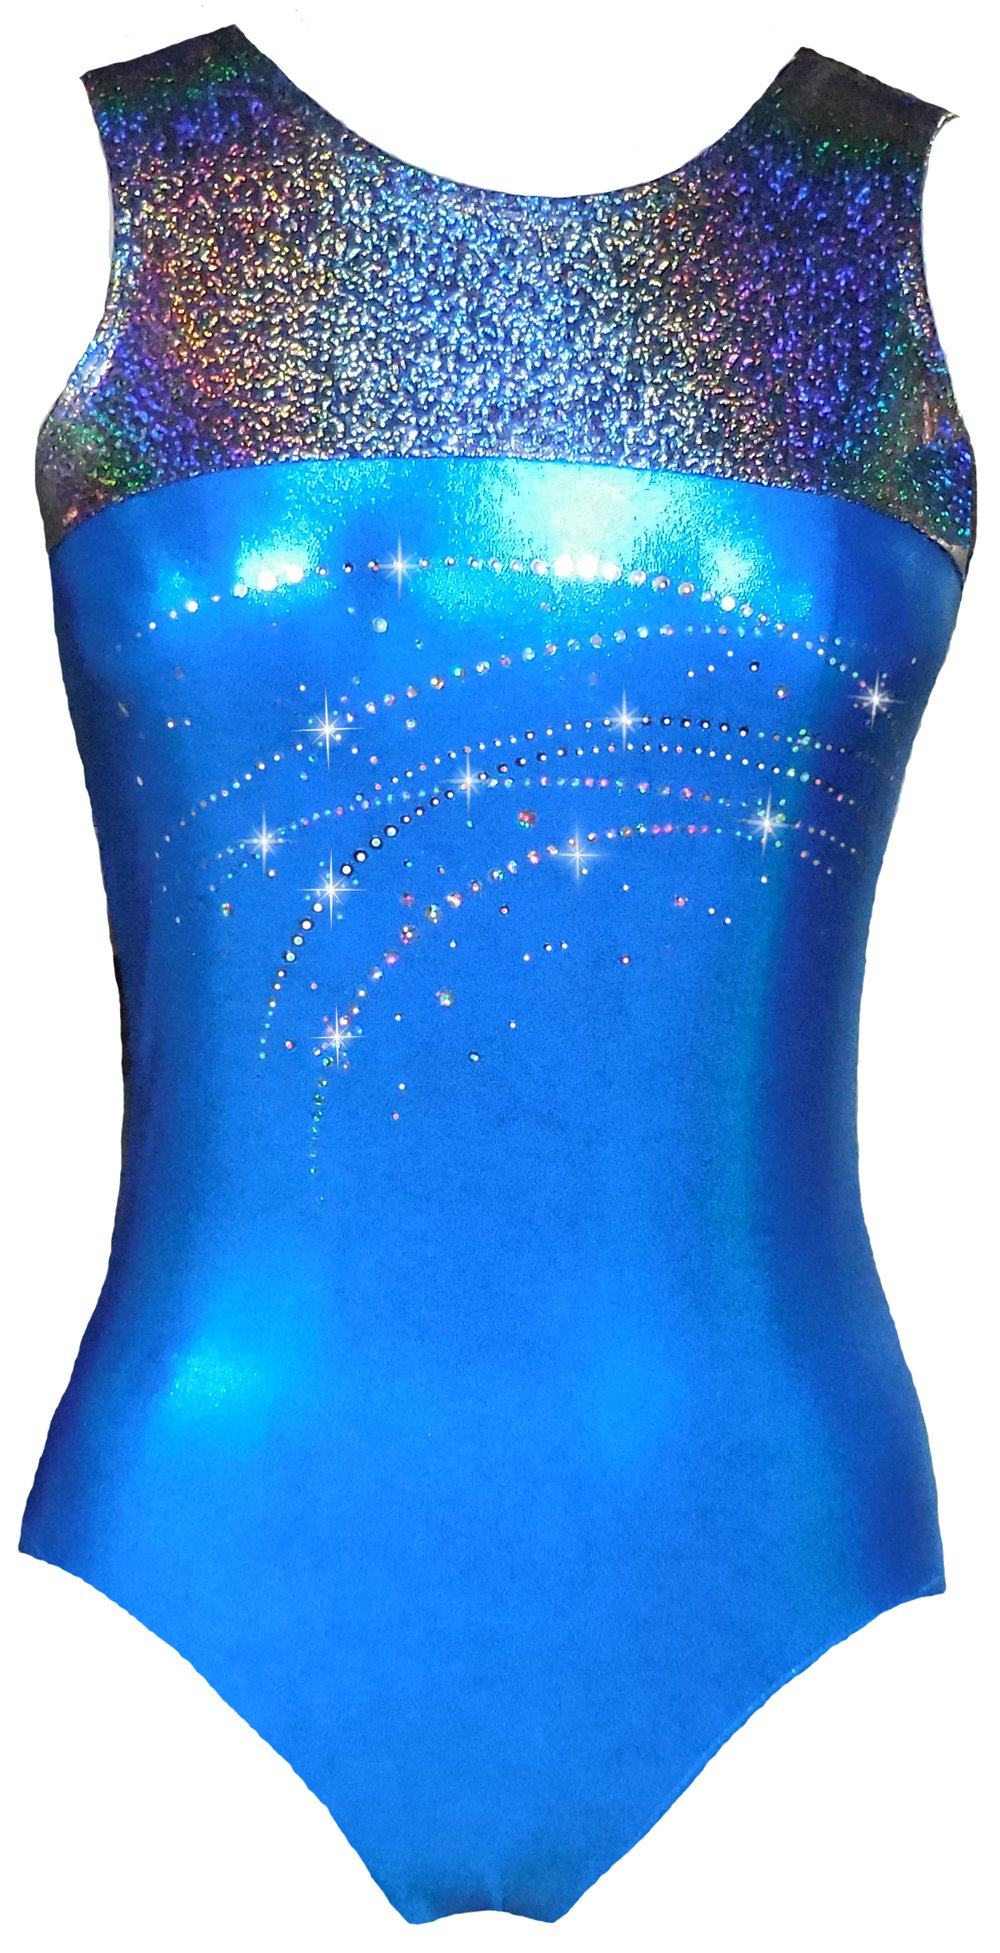 Look-It Activewear Sparkle Stardust Leotard for Gymnastics and Dance girls and women (Child Small (size 3-4)) by Look-It Activewear